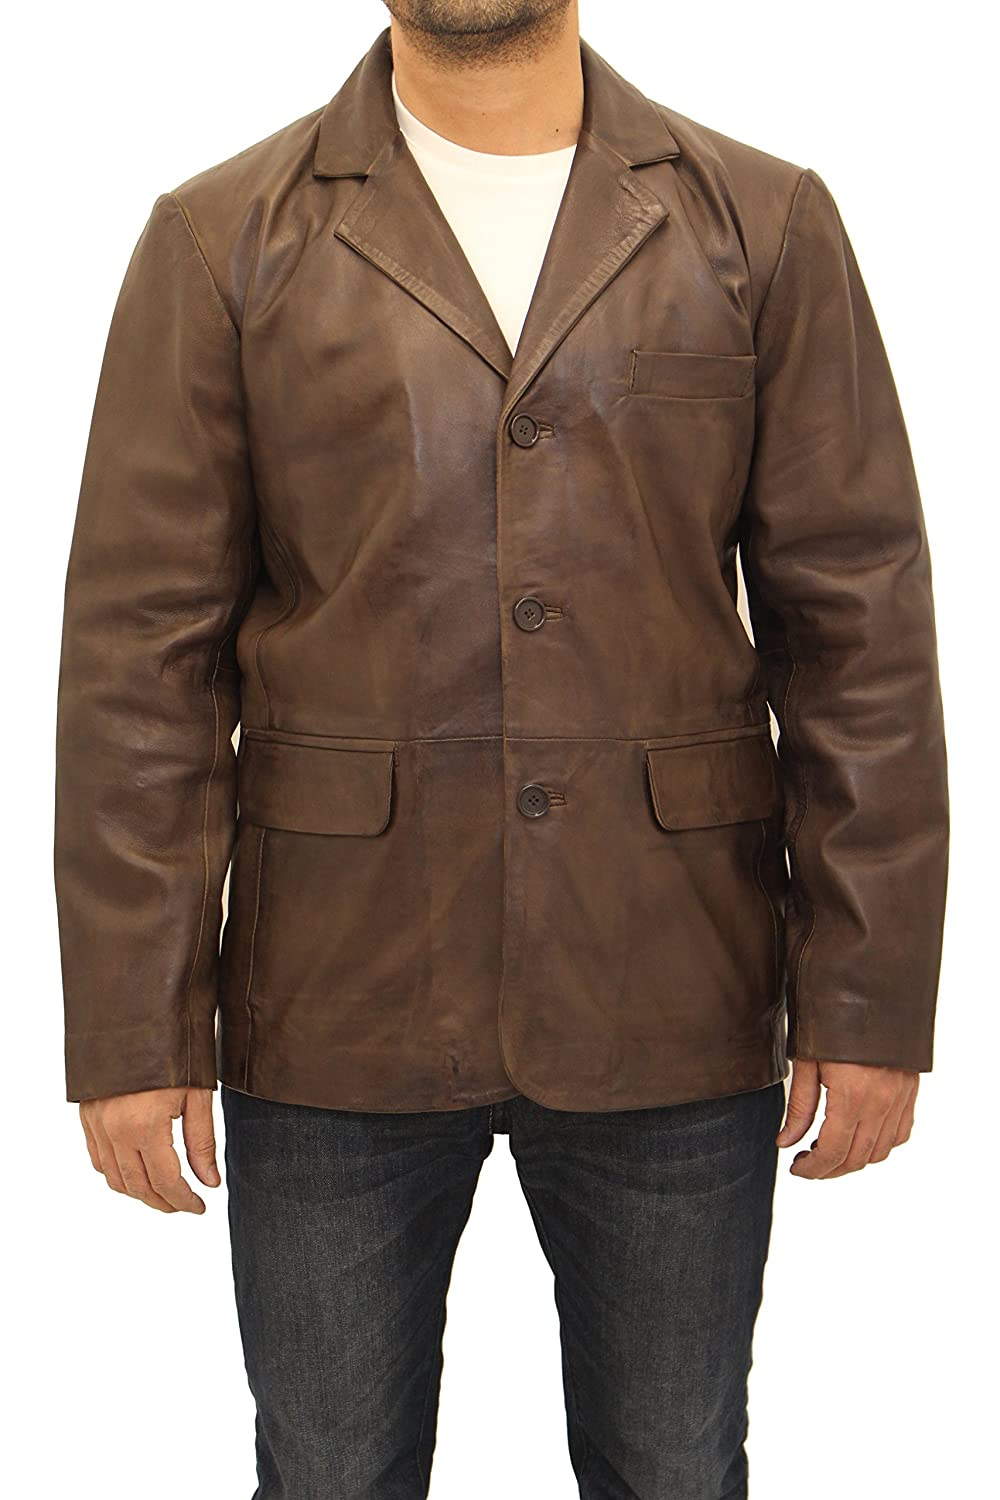 Men's Dark Brown Leather Smart Casual Three Button Classic Fitted Blazer Jacket